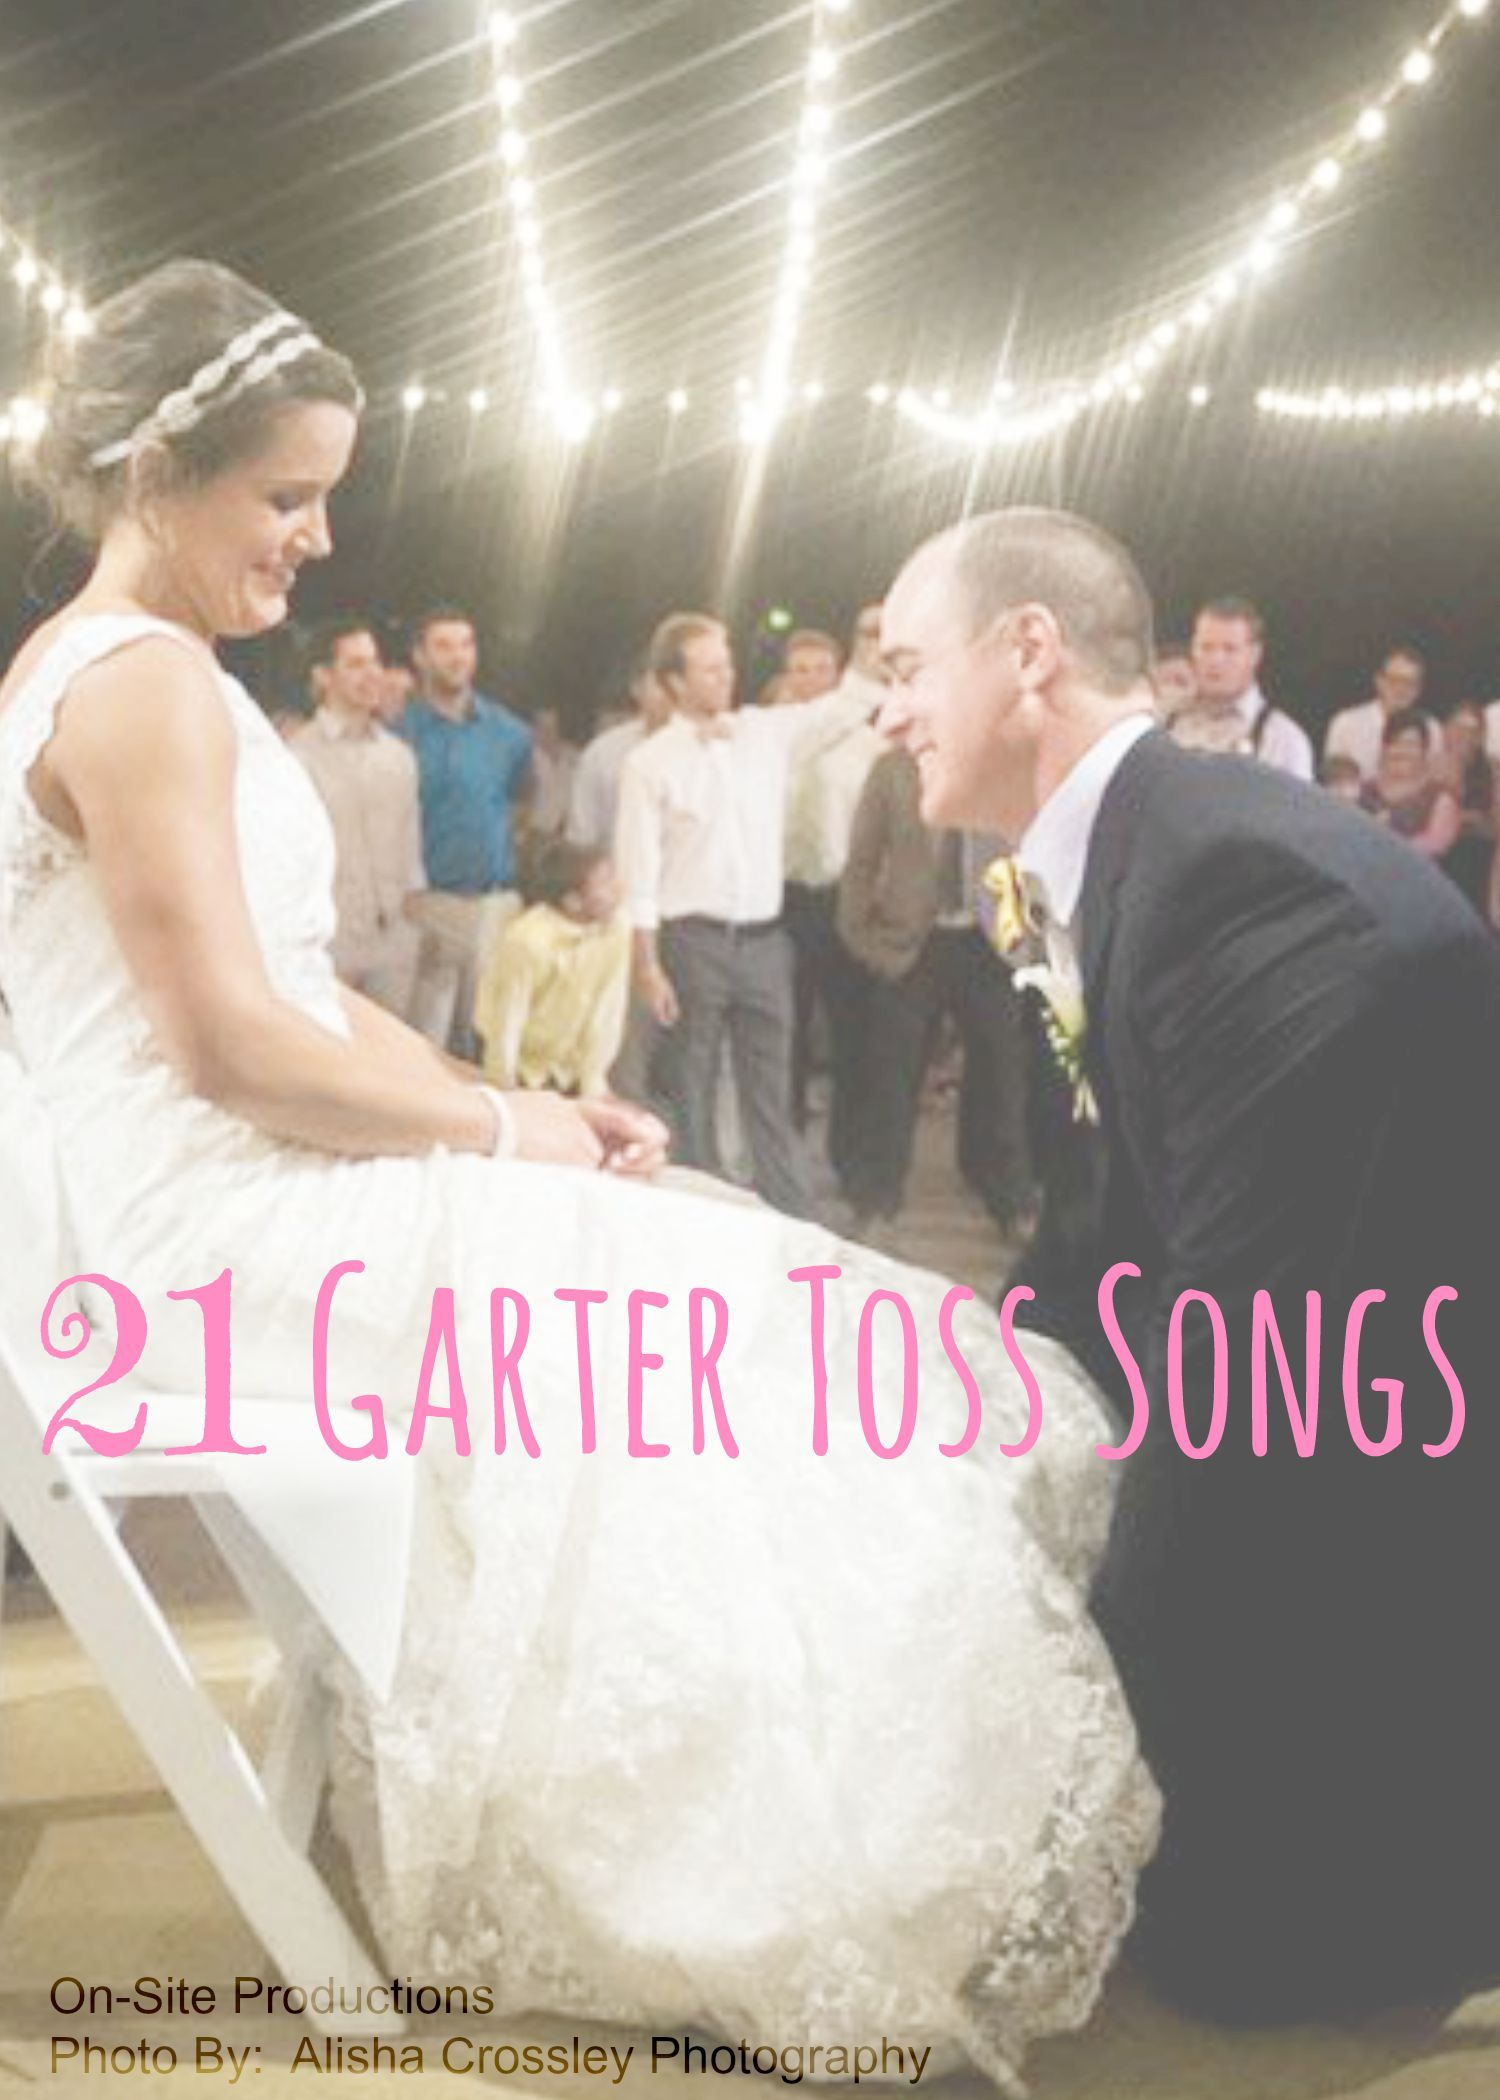 The Garter Toss Is One Of The Oldest Wedding Traditions These Days The Garter Toss Is All About Having Fun The G Wedding Dj Wedding Songs Wedding Playlist